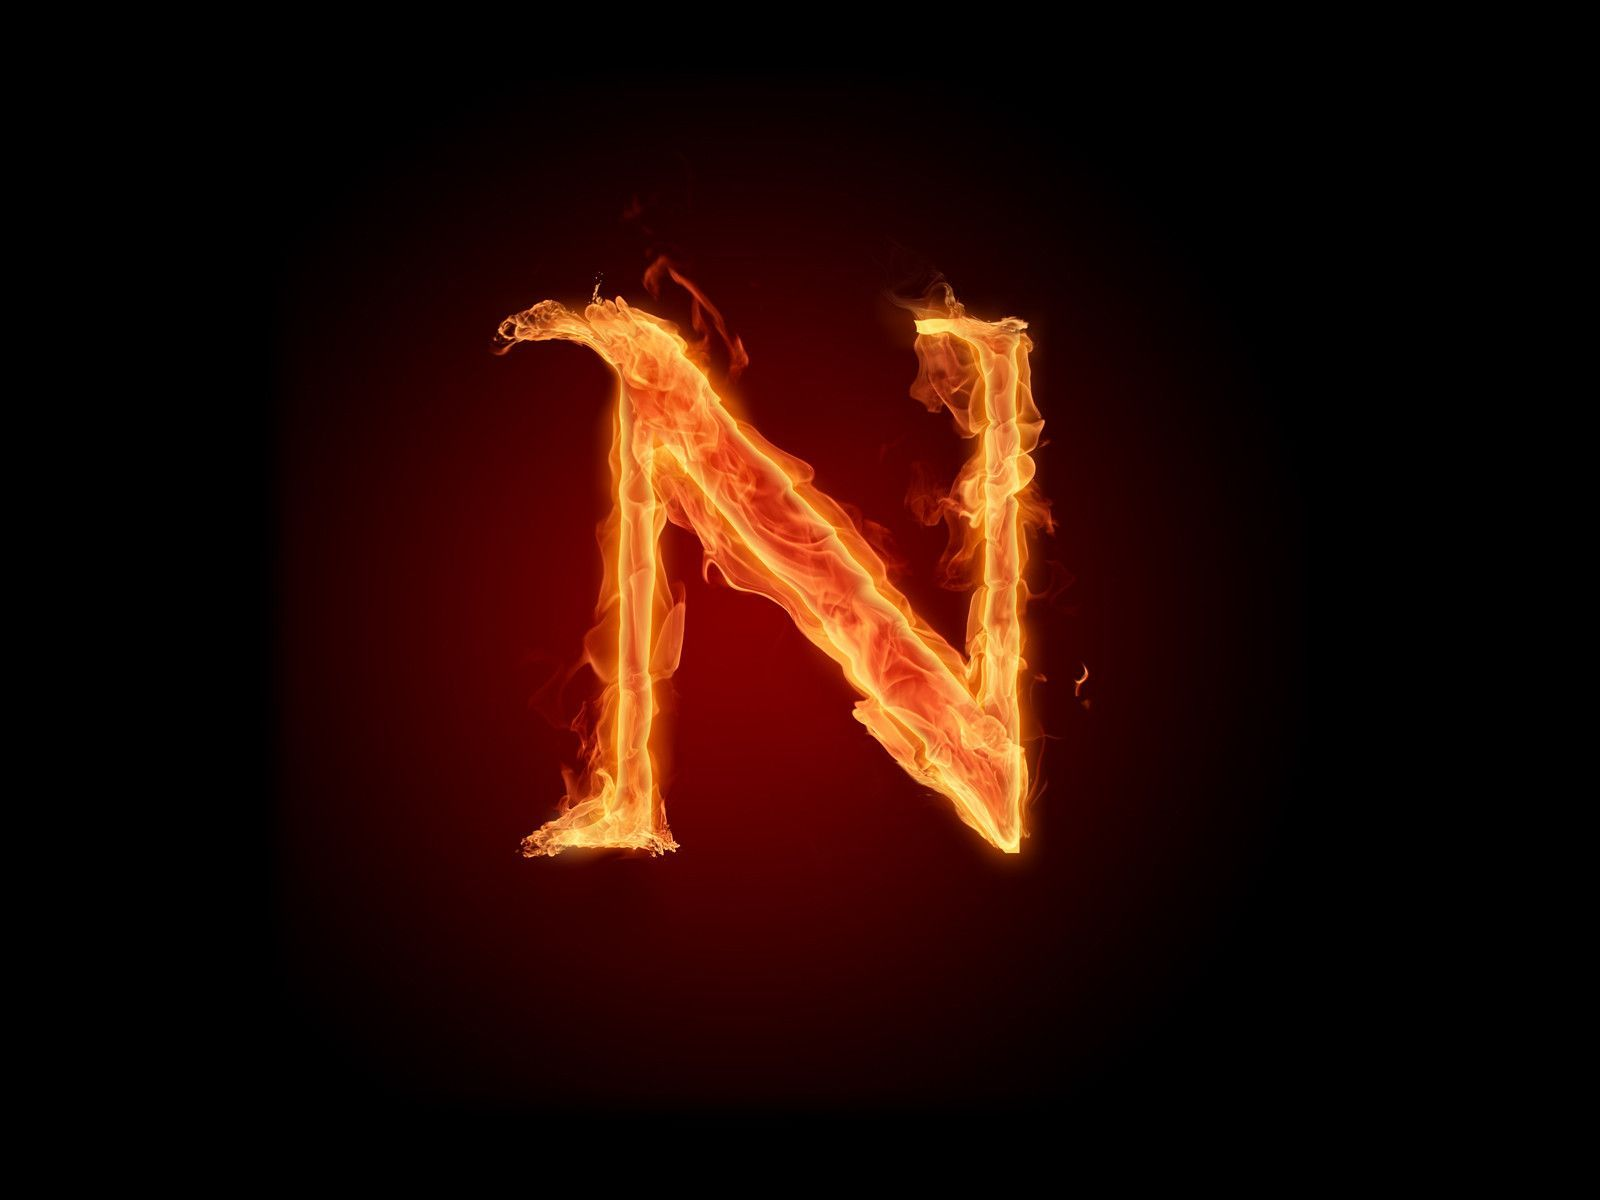 Hd fire fonts fiery letters and fiery numbers 1600x1200 no14 hd fire fonts fiery letters and fiery numbers 1600x1200 no14 altavistaventures Choice Image